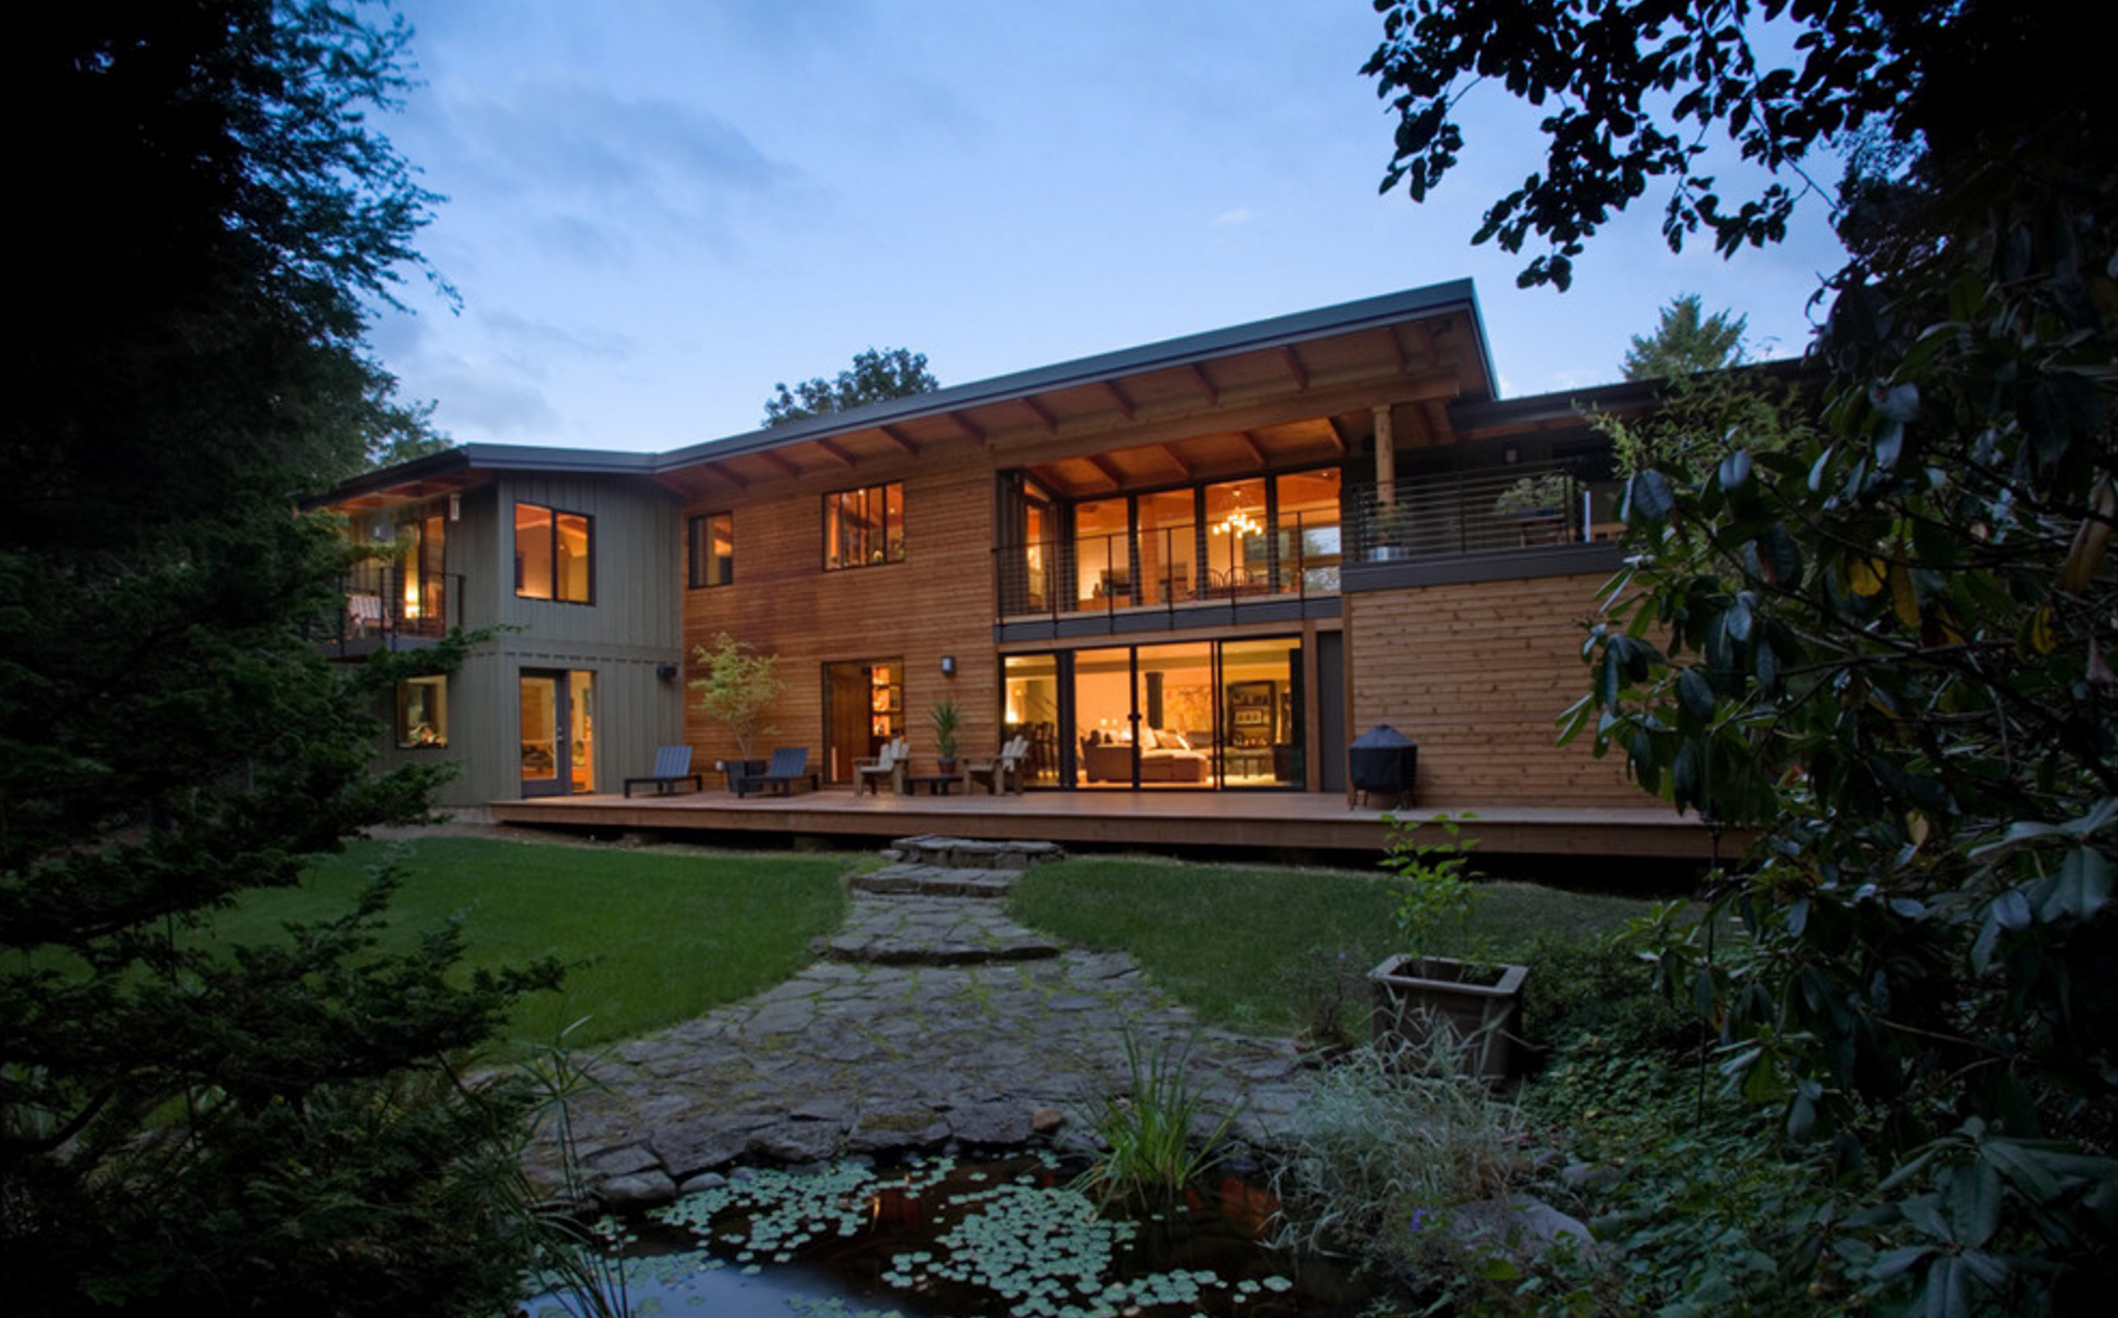 BAKER RESIDENCE  |  LAKE OSWEGO, OR